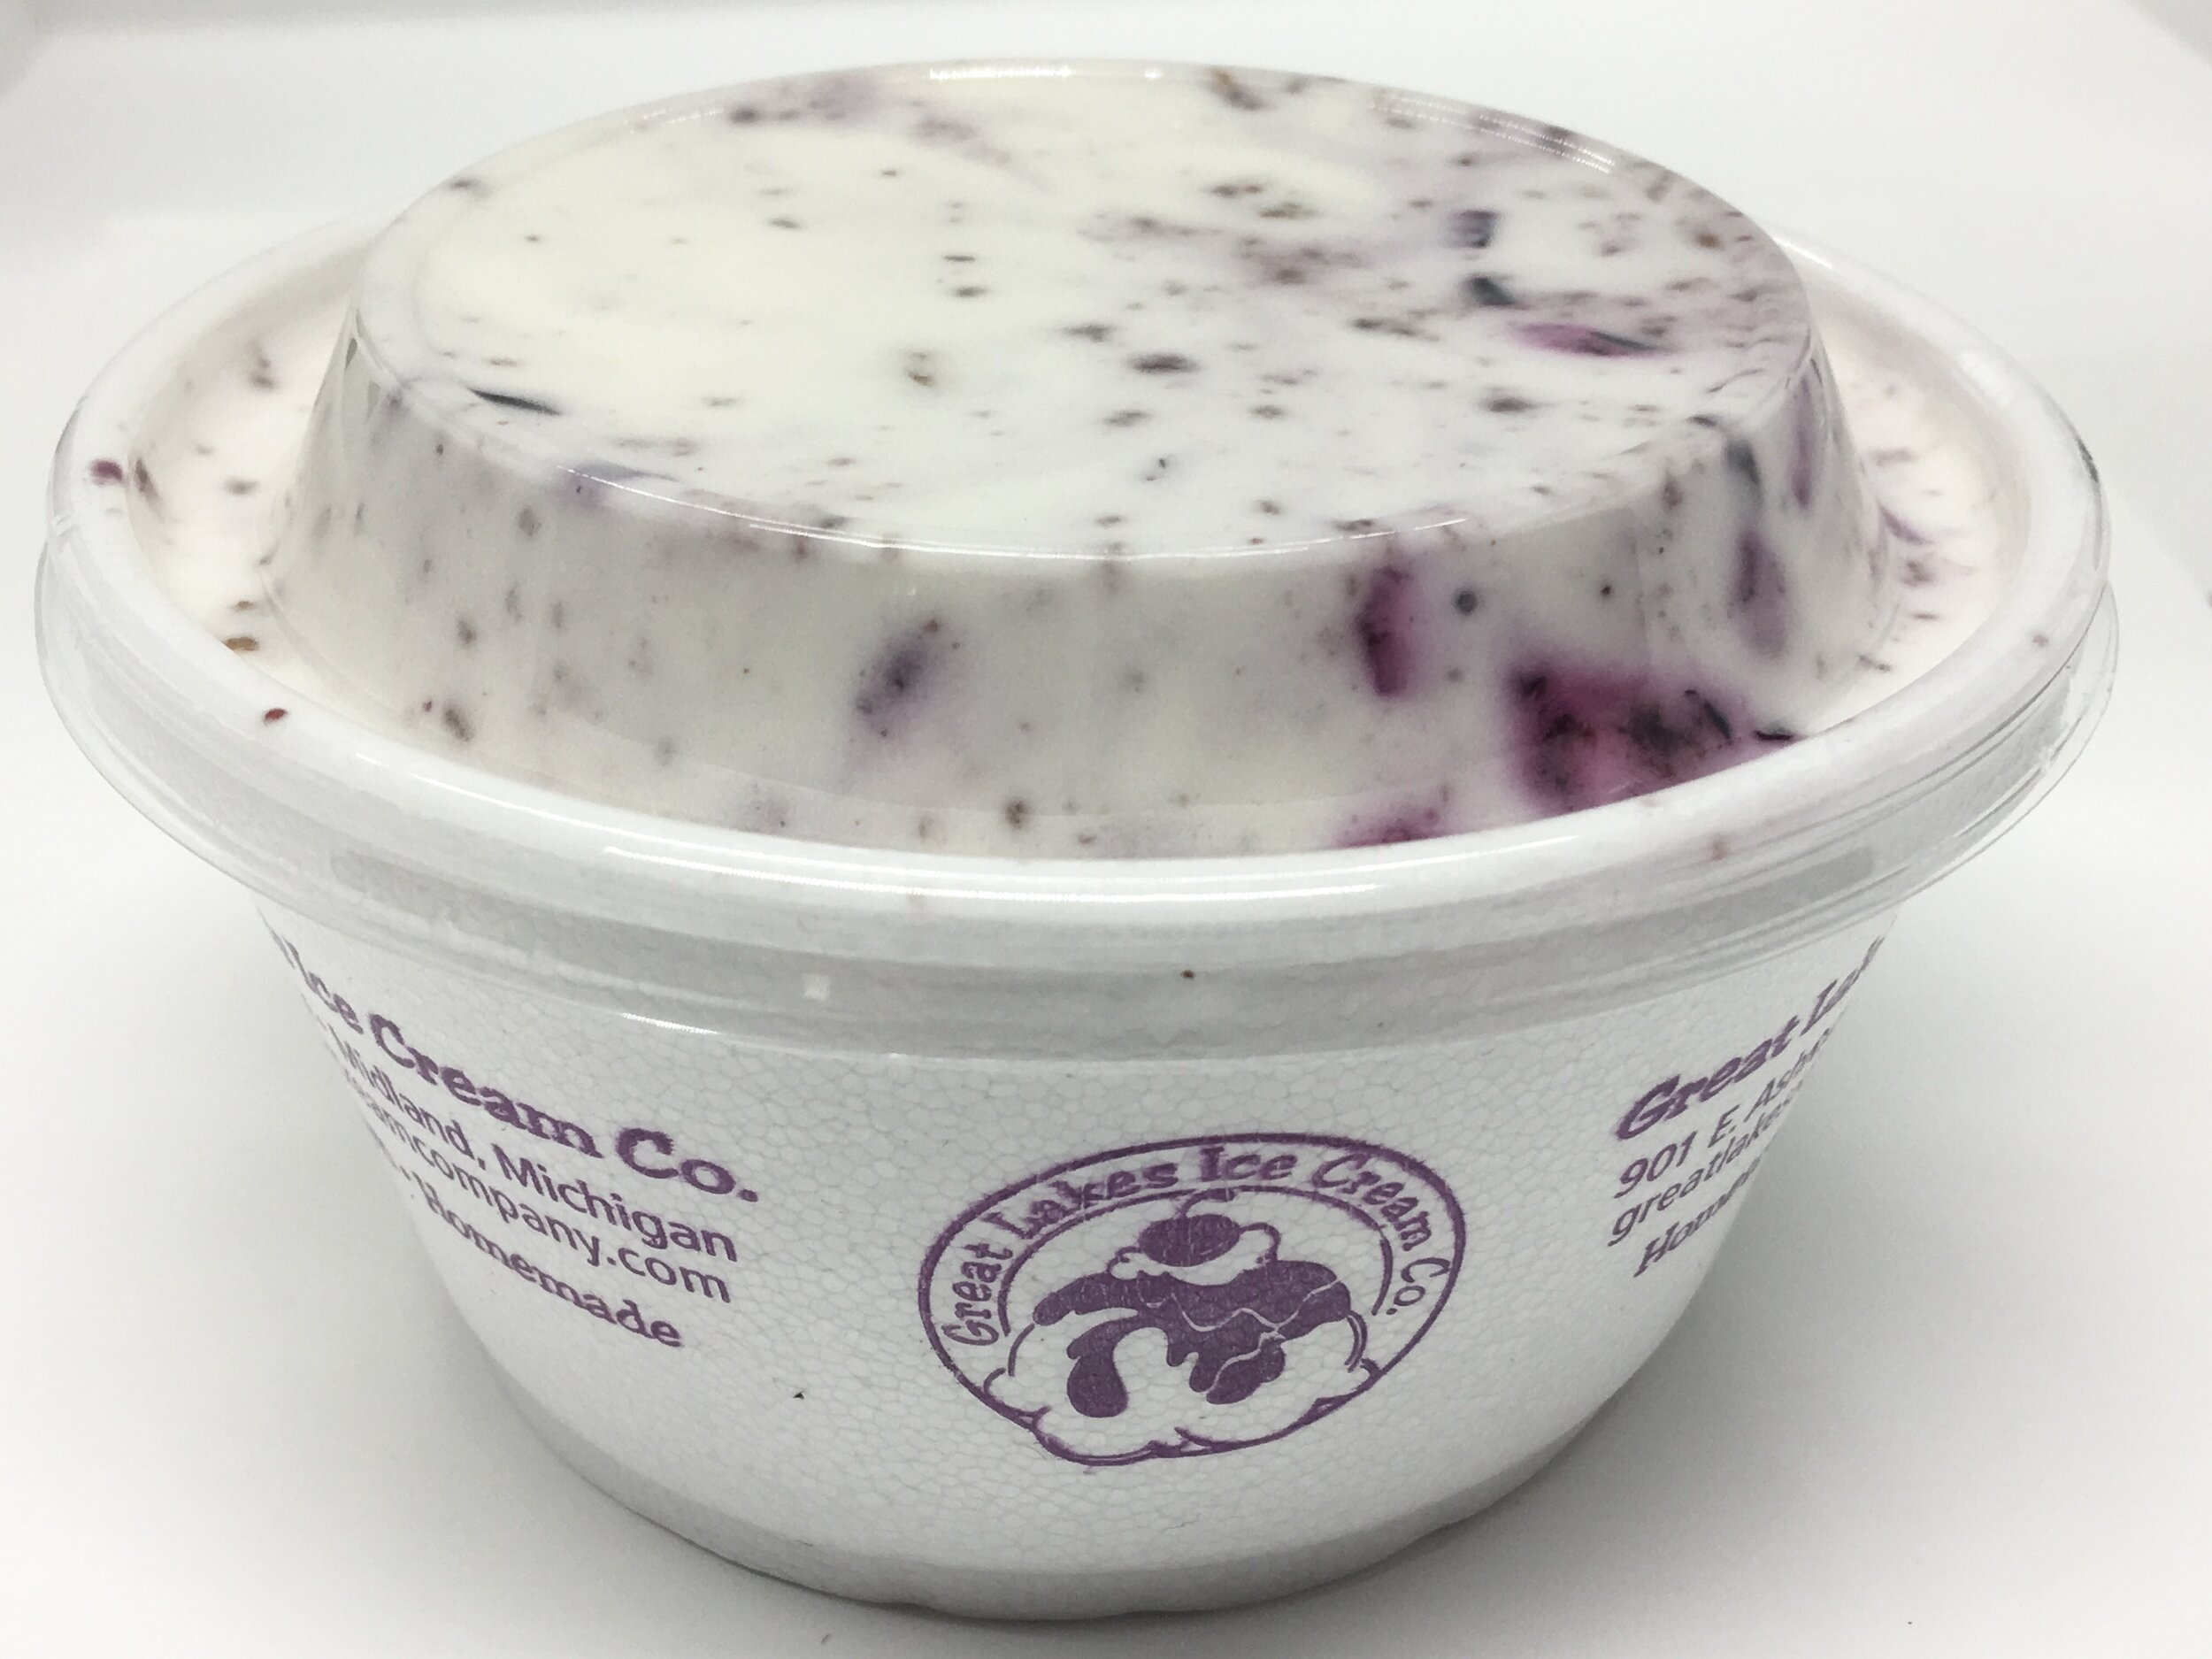 BLUEBERRY WAFFLE CONE - We custom made this flavor for a farm that provided us with ready to use blueberry puree that they made from their own fresh grown blueberries.